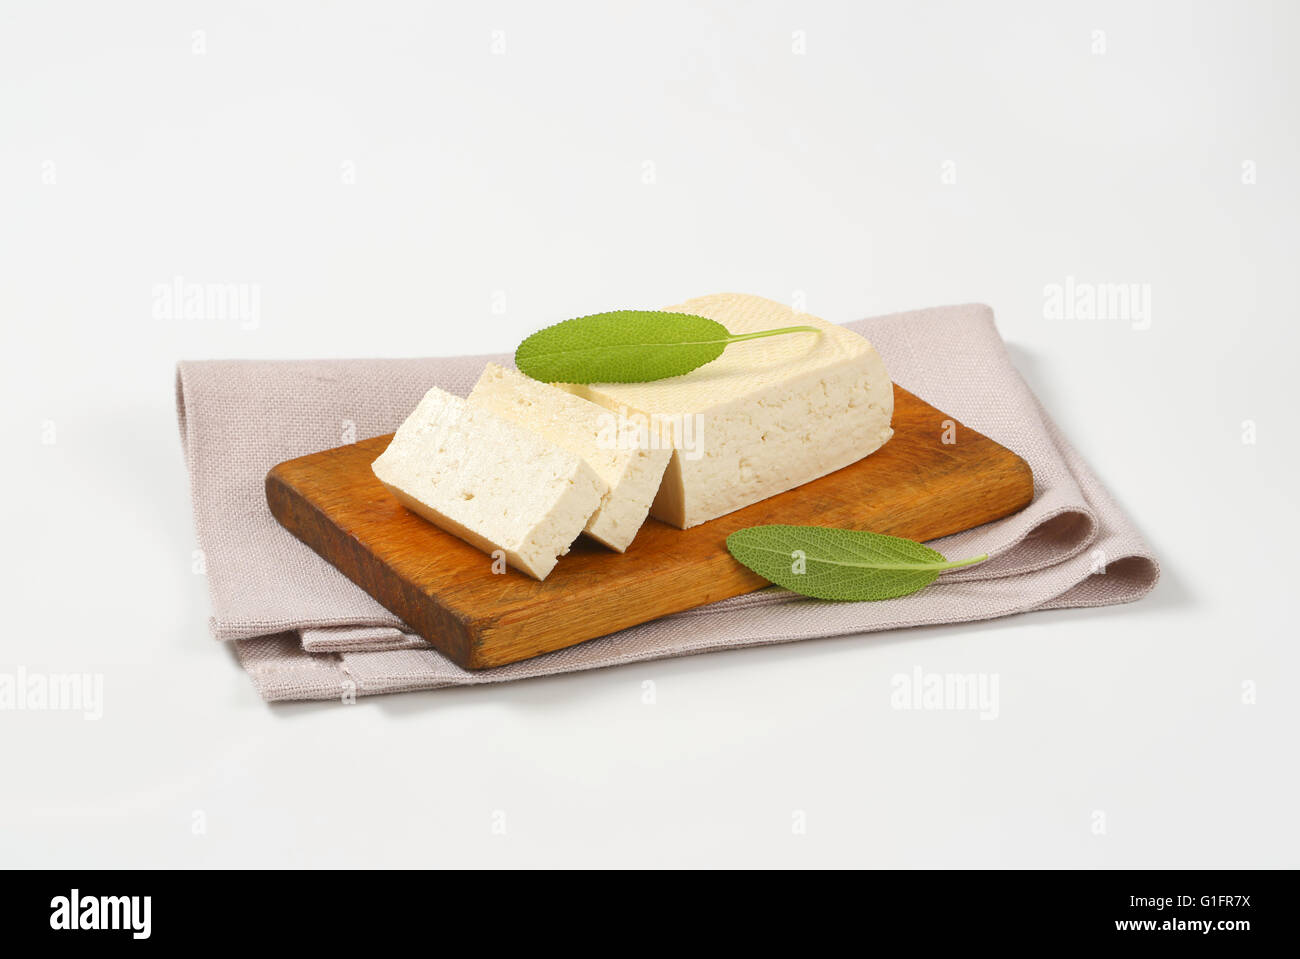 Bloc de tofu frais on cutting board Photo Stock